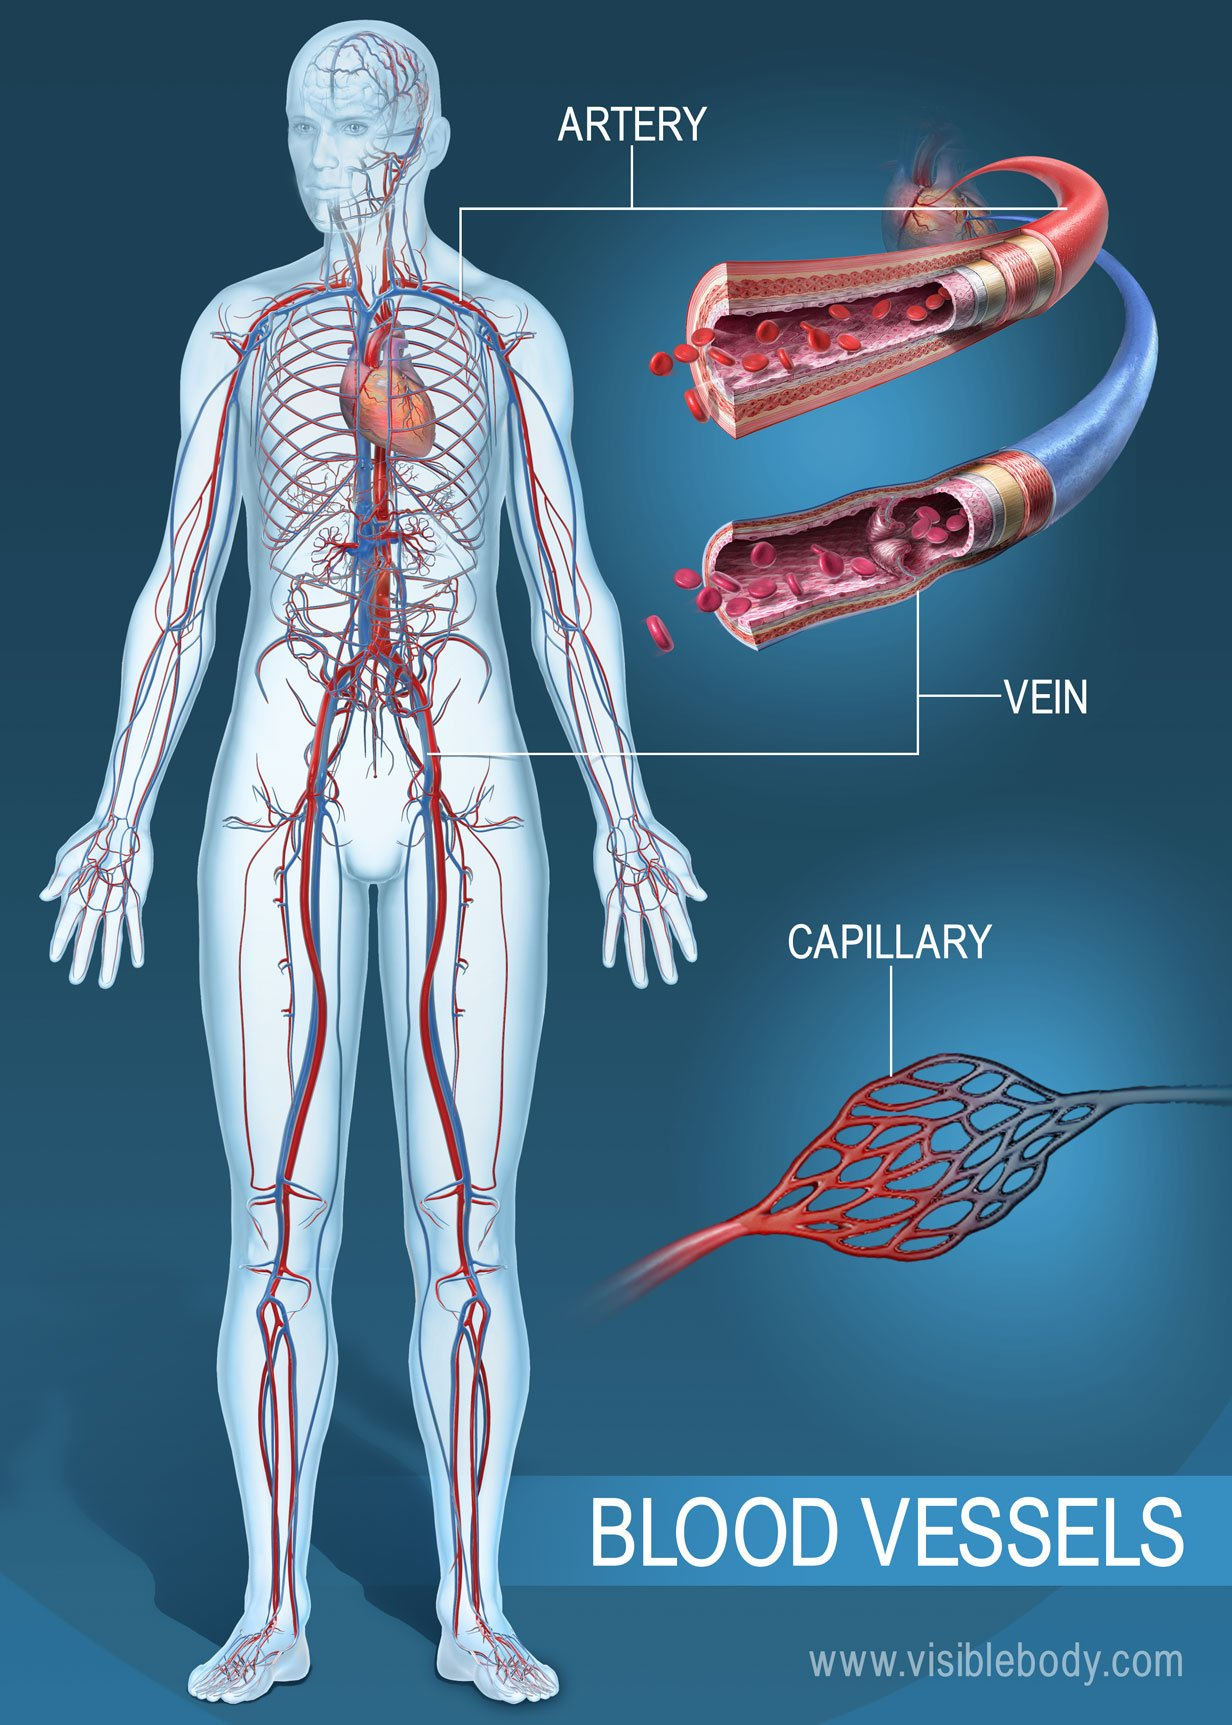 Blood vessels of the human body